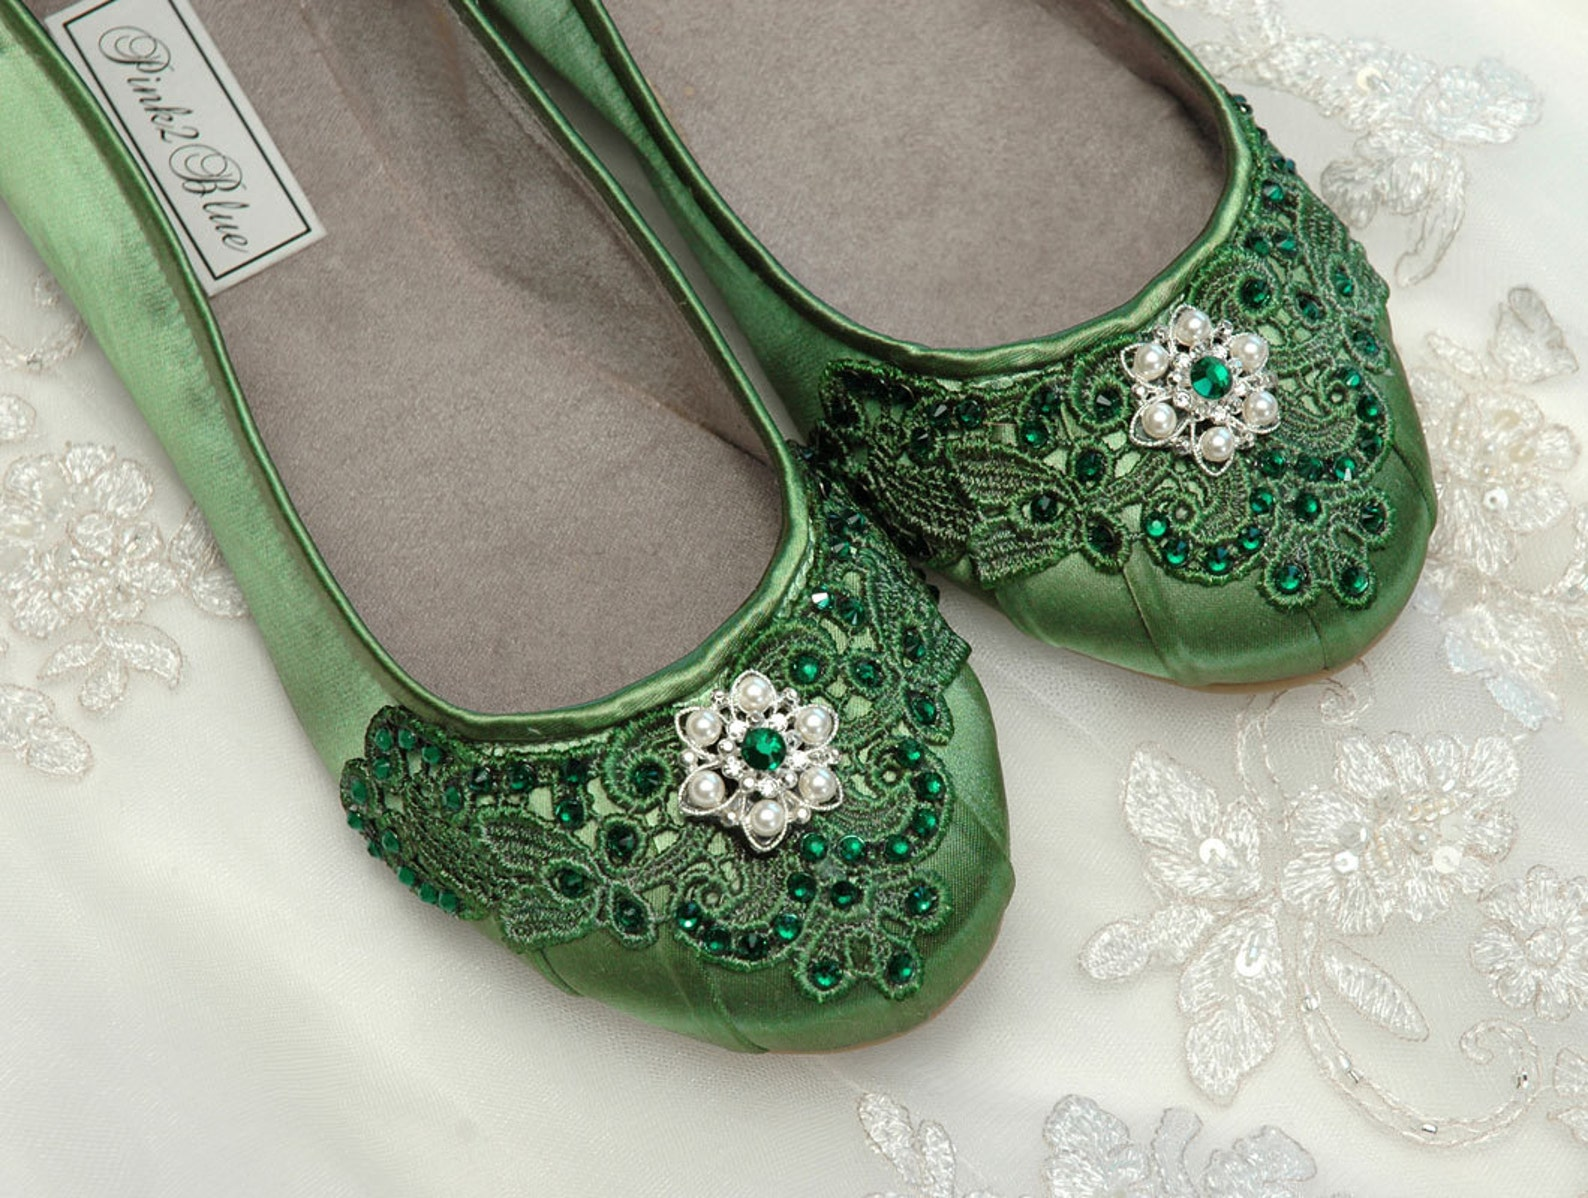 wedding shoes - ballet flats, 250 custom colors, vintage lace, swarovski crystals, belle-women's bridal shoes